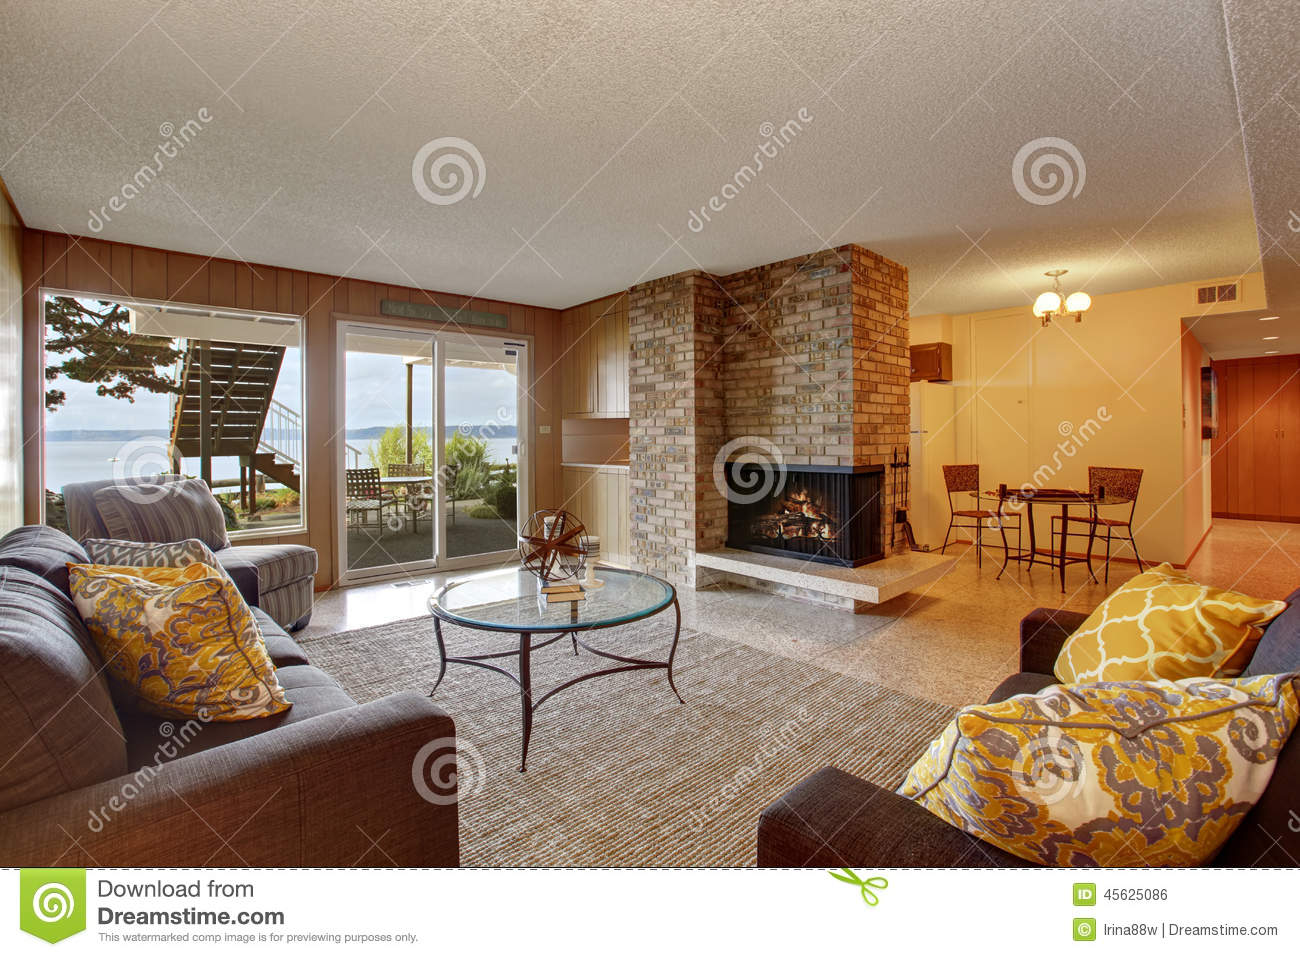 seminterrato interior design : Basement living room with wooden wall trim, brick fireplace and exit ...